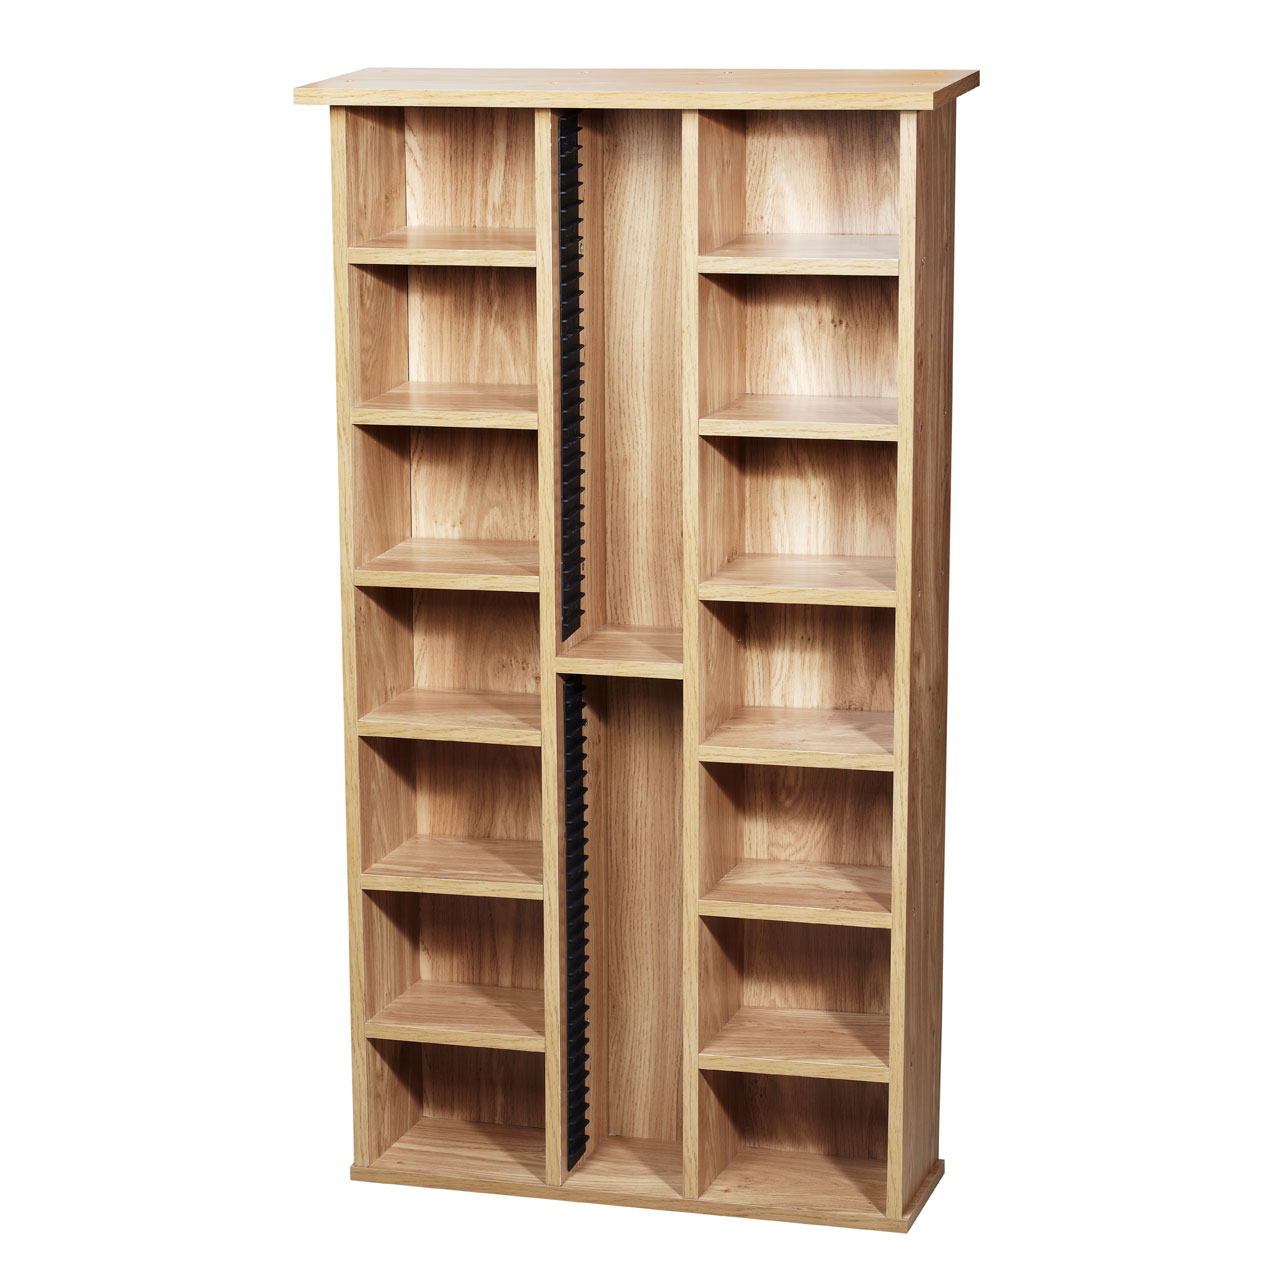 Dvd Storage Units New Cd Dvd Storage Unit Oak Effect Holds Up To 60 120